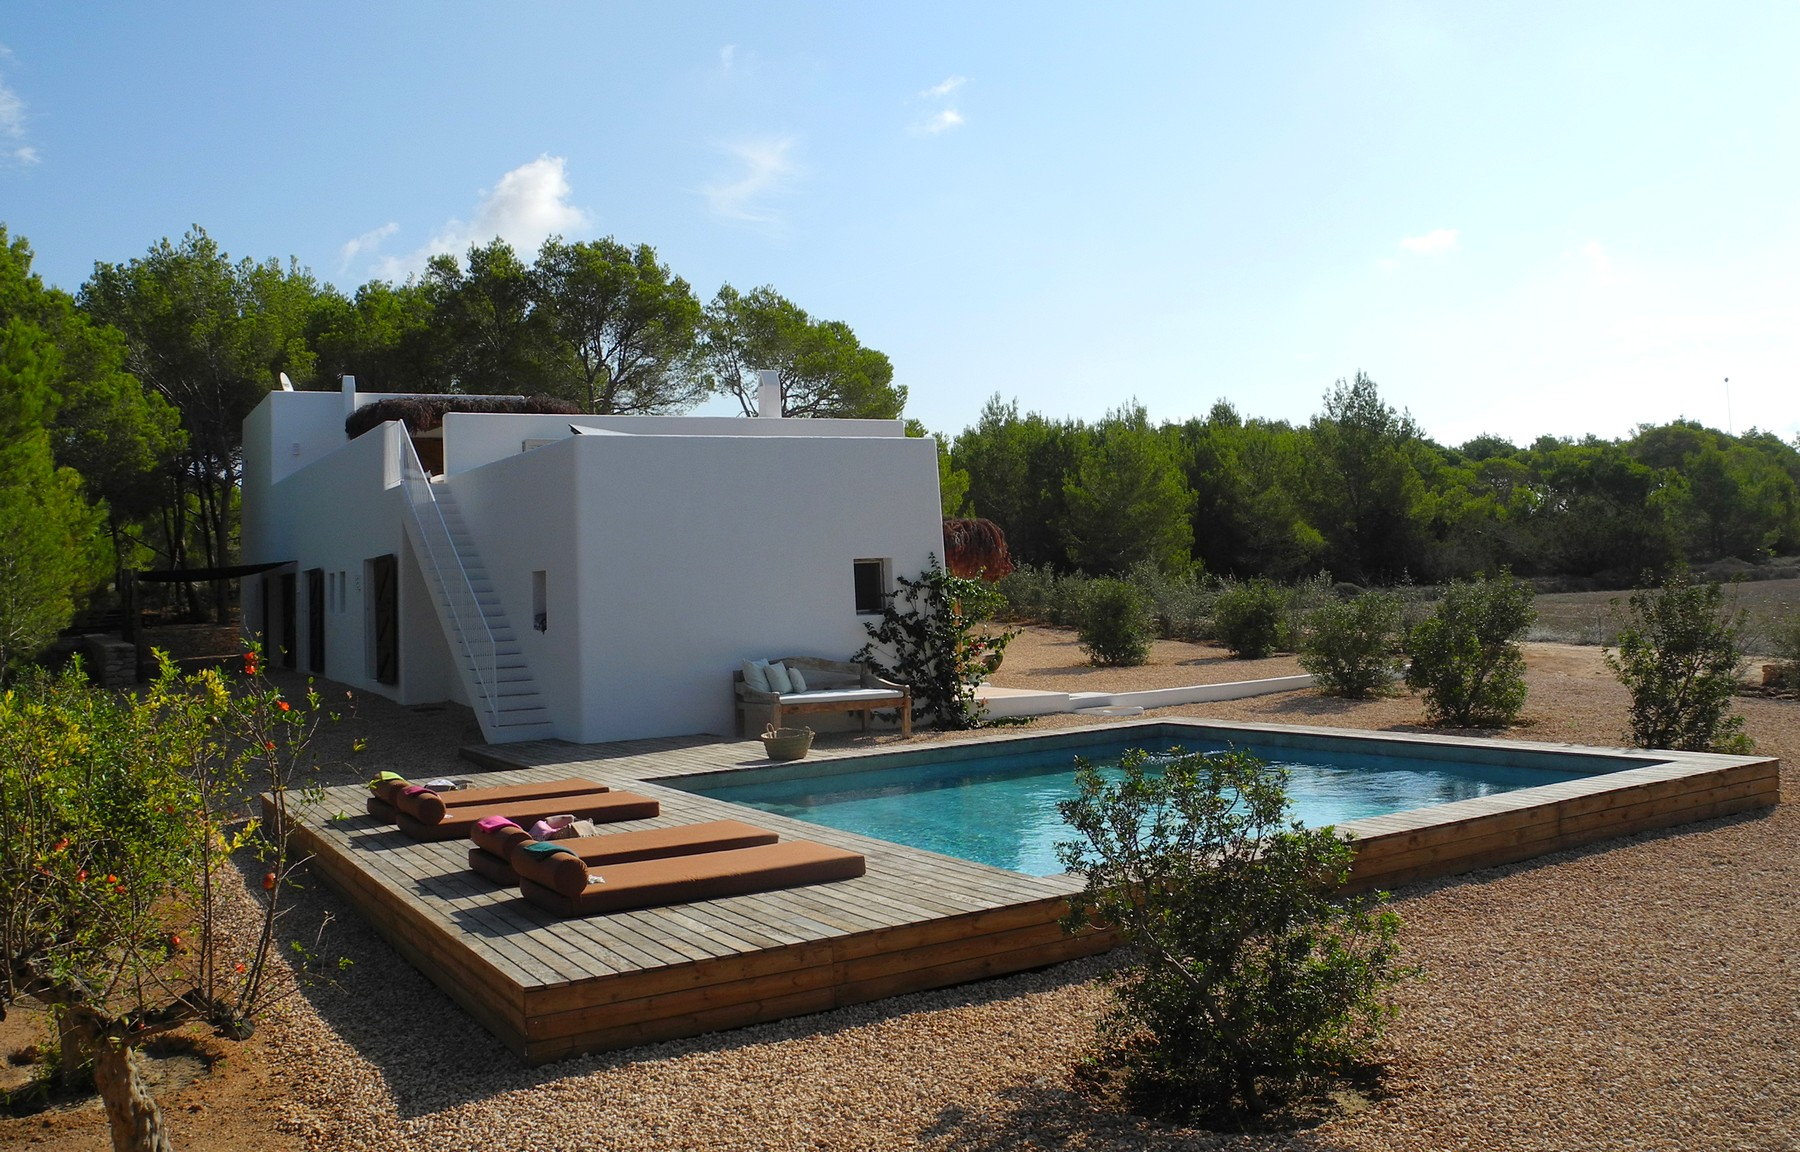 Single Family Home for Sale at Villa In Formentera Country Side Formentera, Formentera, 07822 Spain